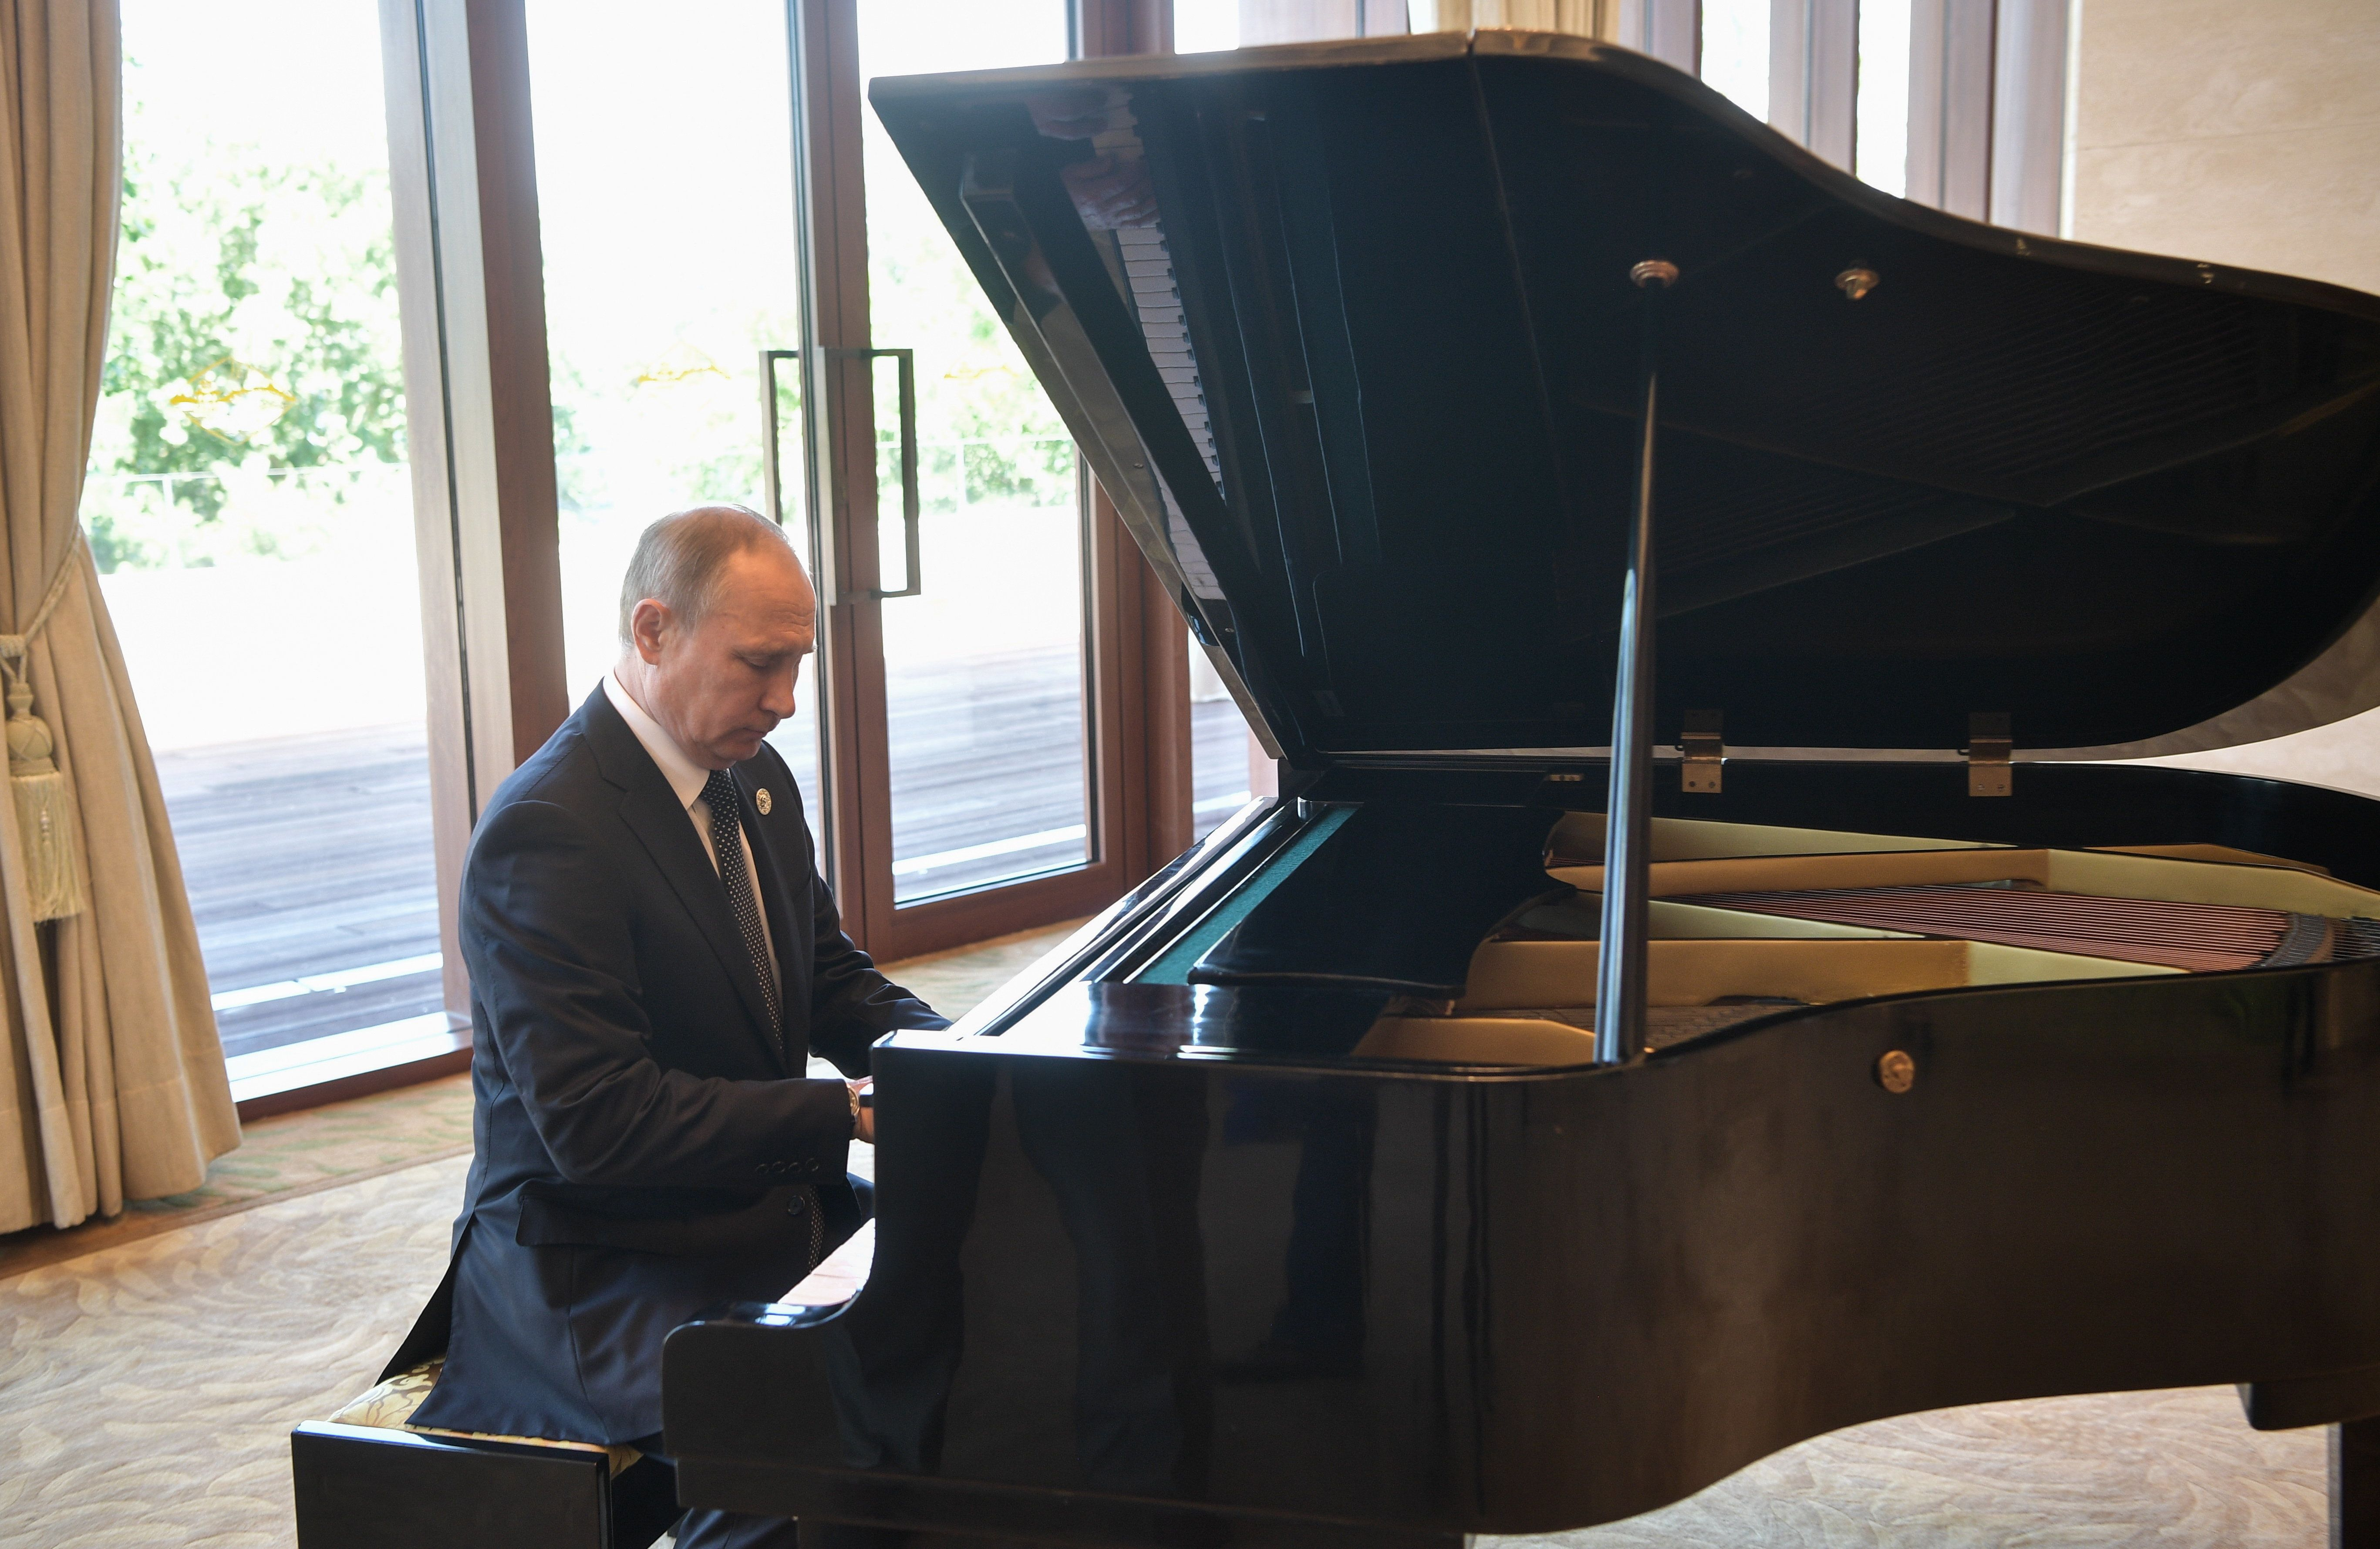 BEIJING, CHINA - MAY 14, 2017: Russias President Vladimir Putin plays the grand piano ahead of a meeting with China's President Xi Jinping at the Diaoyutai State Guesthouse. Alexei Nikolsky/Russian Presidential Press and Information Office/TASS (Photo by Alexei Nikolsky\TASS via Getty Images)